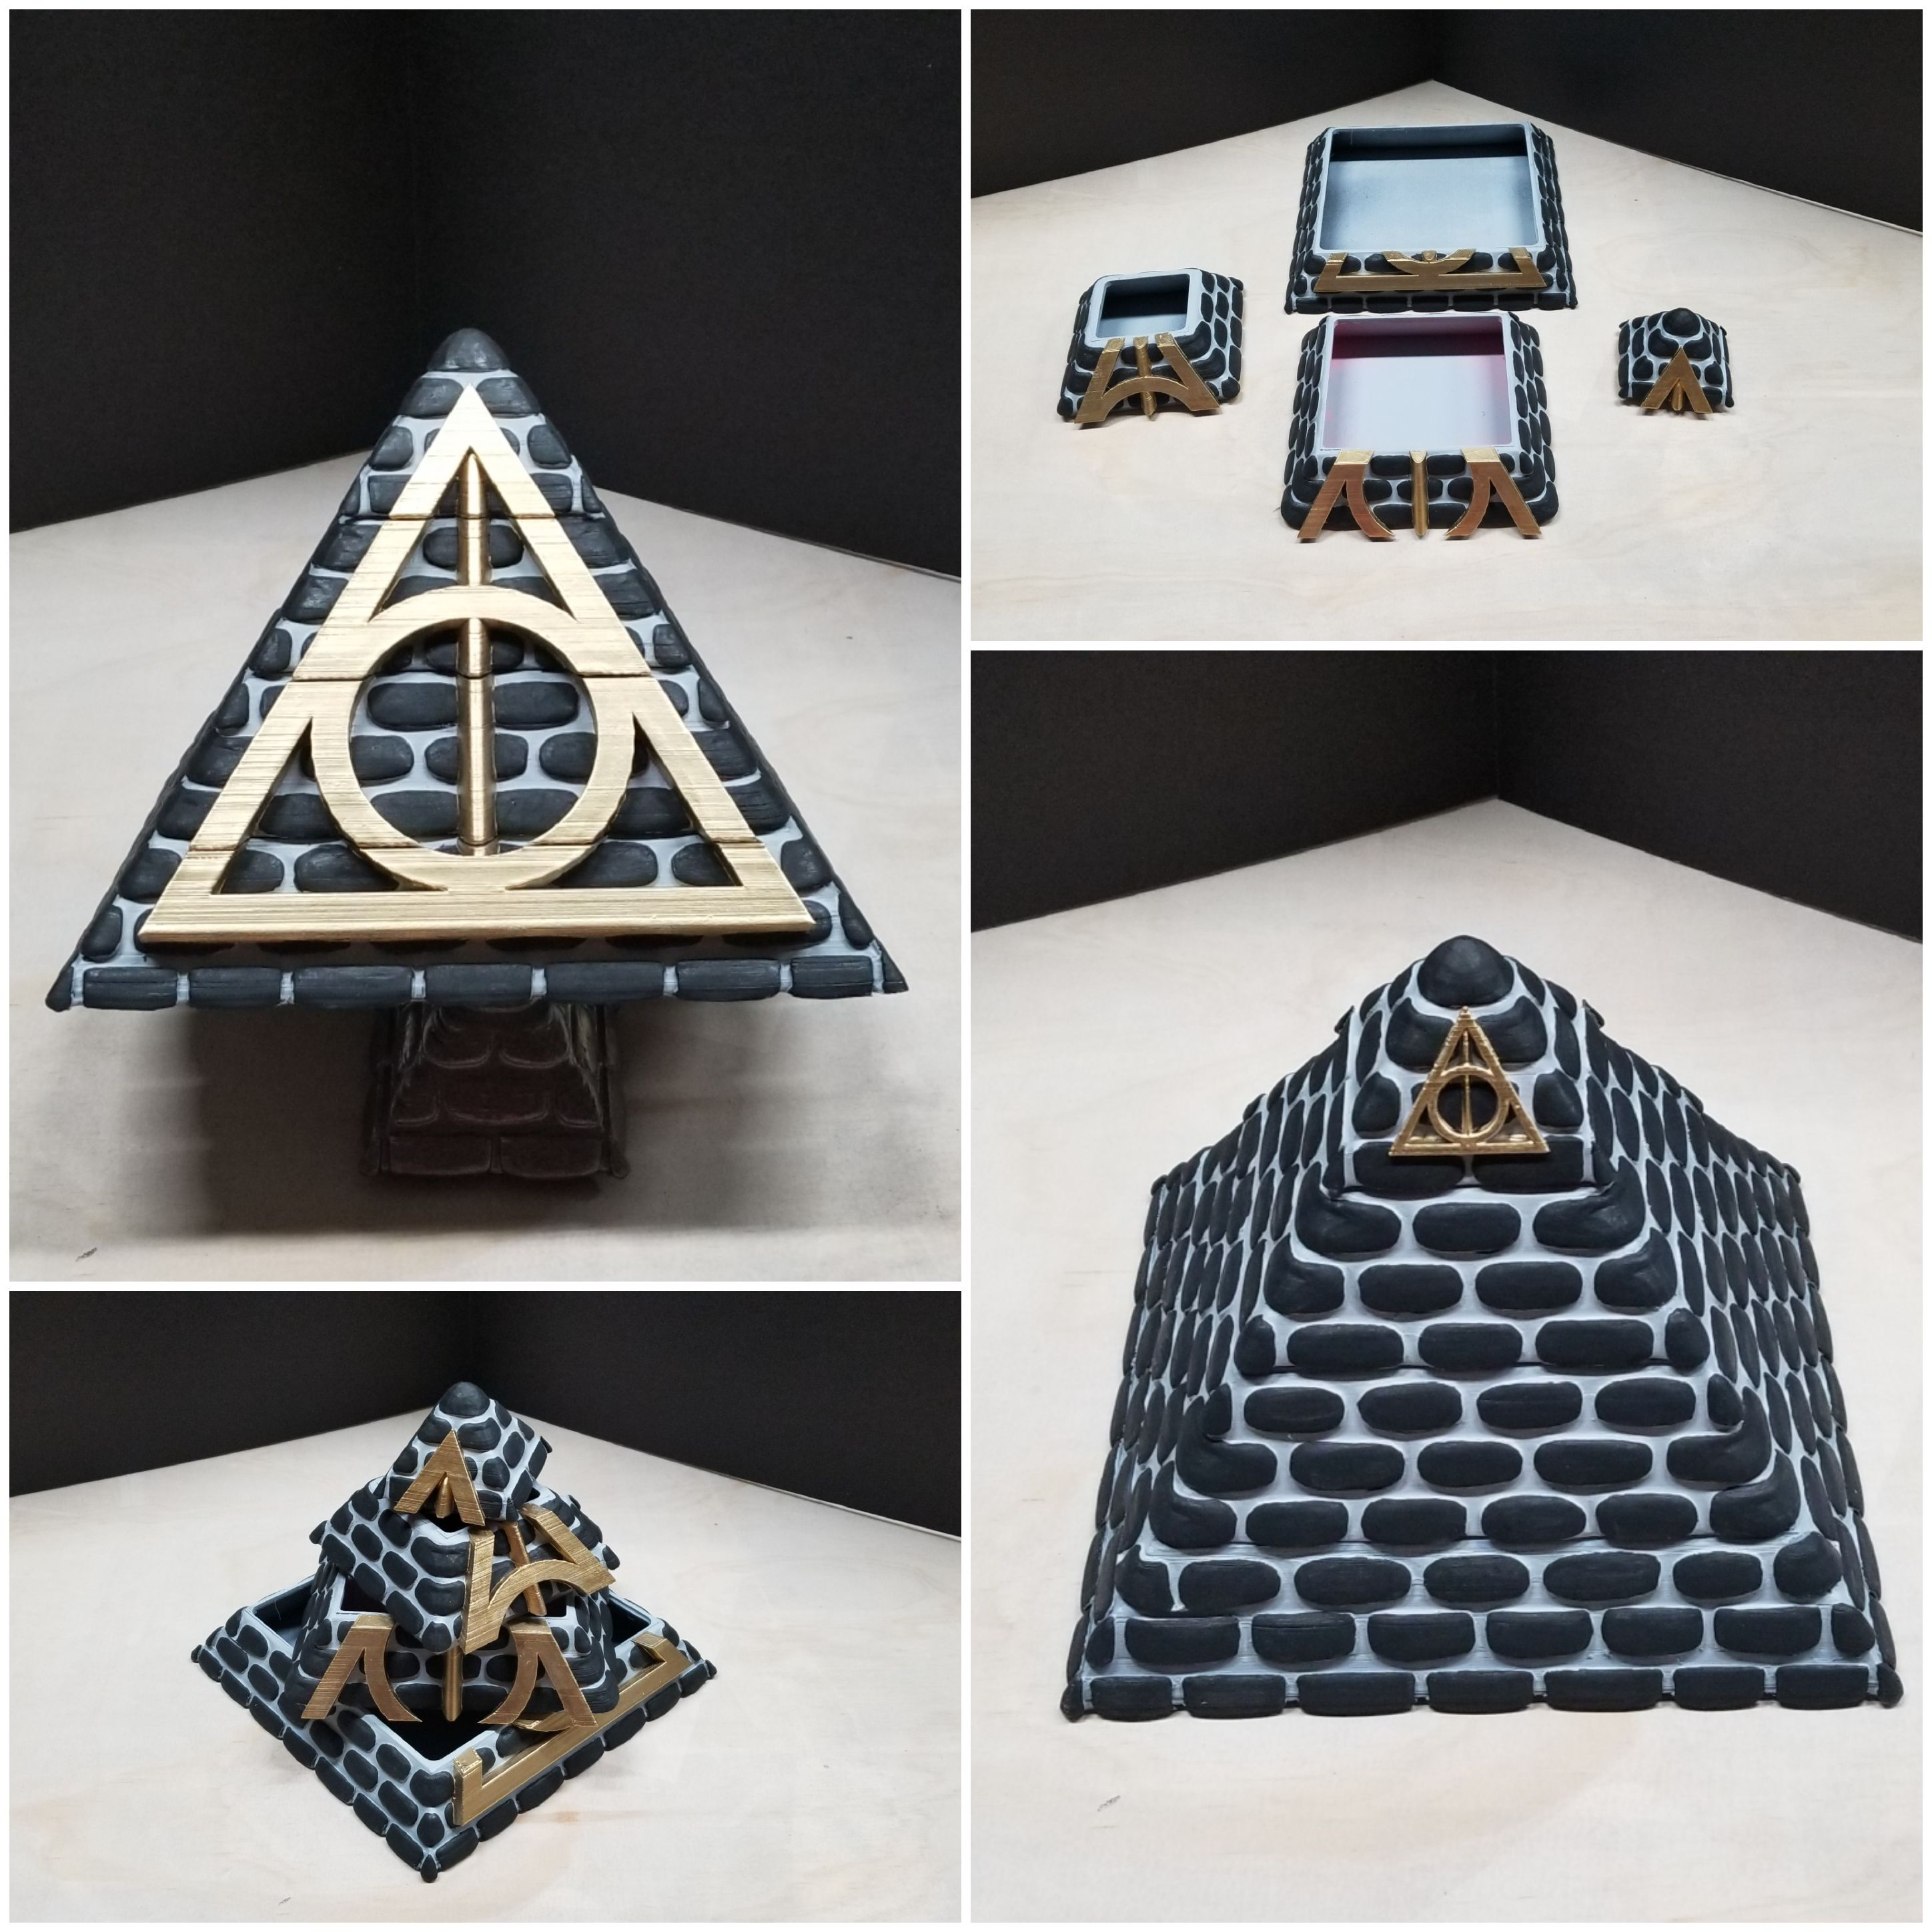 20190529_164326[1].jpg Download free STL file POTTER PYRAMID BOX with a Chamber of secrets • Template to 3D print, LittleTup